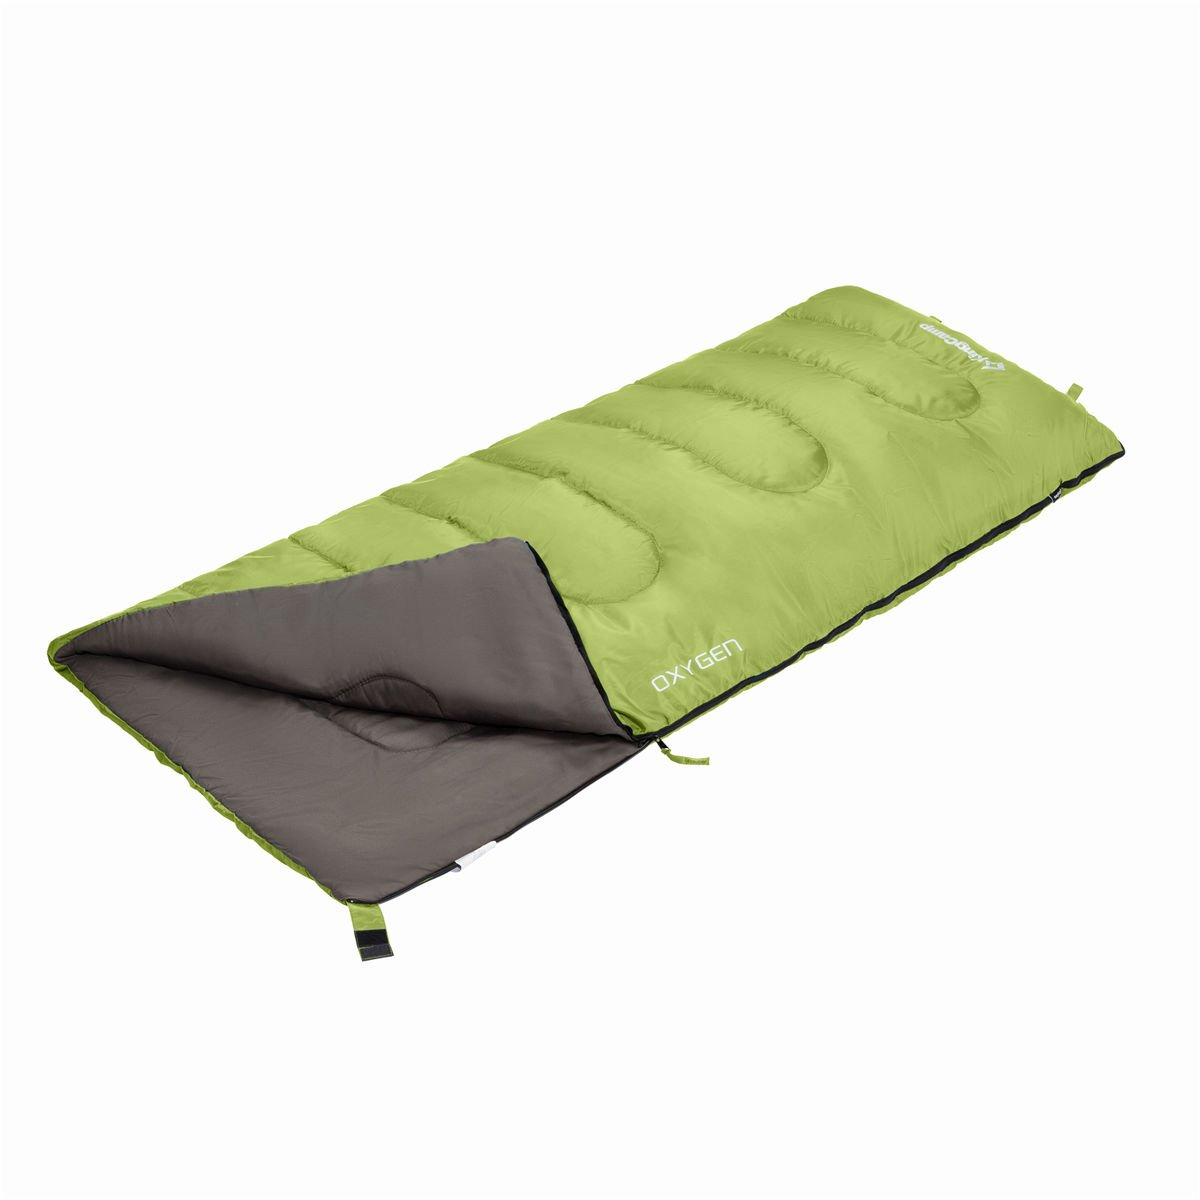 Oxygen 12 C / 53 F Lightweight Sleeping Bag Camping Backpacking 7429'' by Sleeping Bag